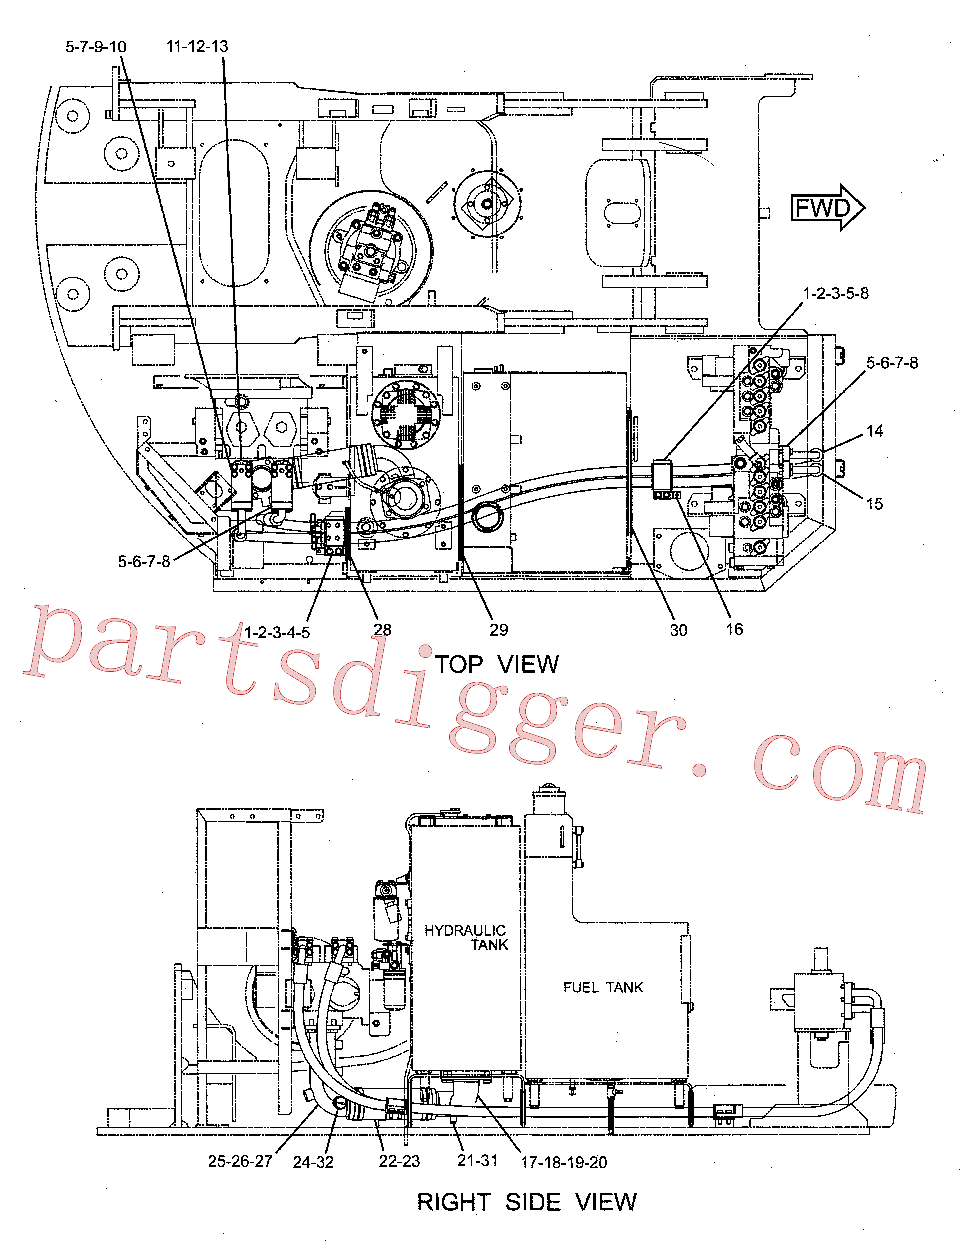 CAT 115-8678 for 325C Excavator(EXC) hydraulic system 231-8431 Assembly